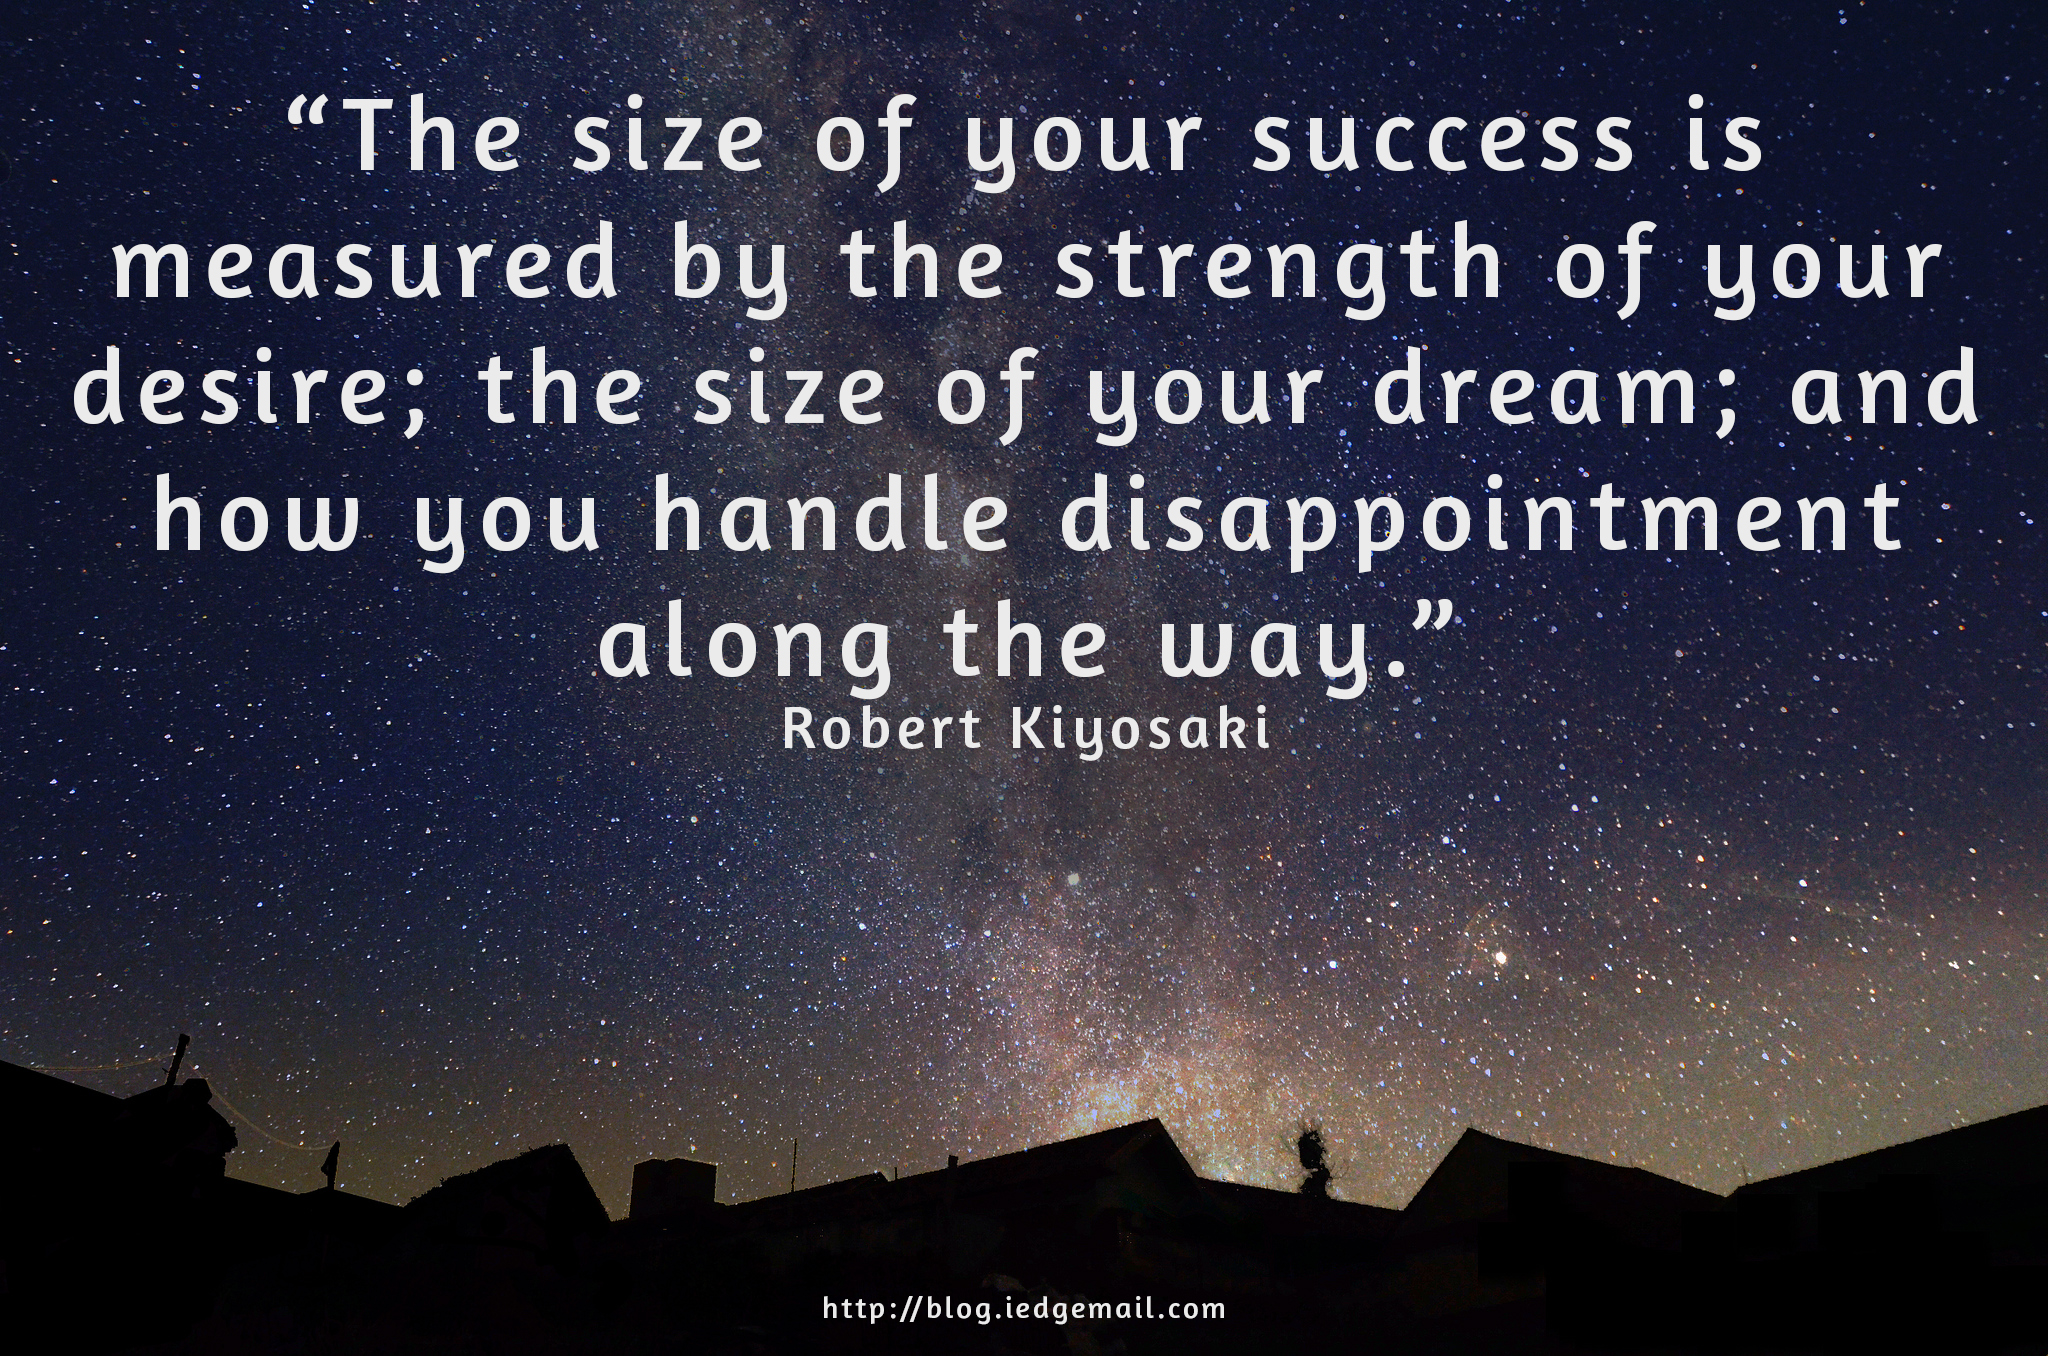 """The size of your success is  measured by the strength of your desire; the size of your dream; and how you handle disappointment along the way."" - Robert Kiyosaki"